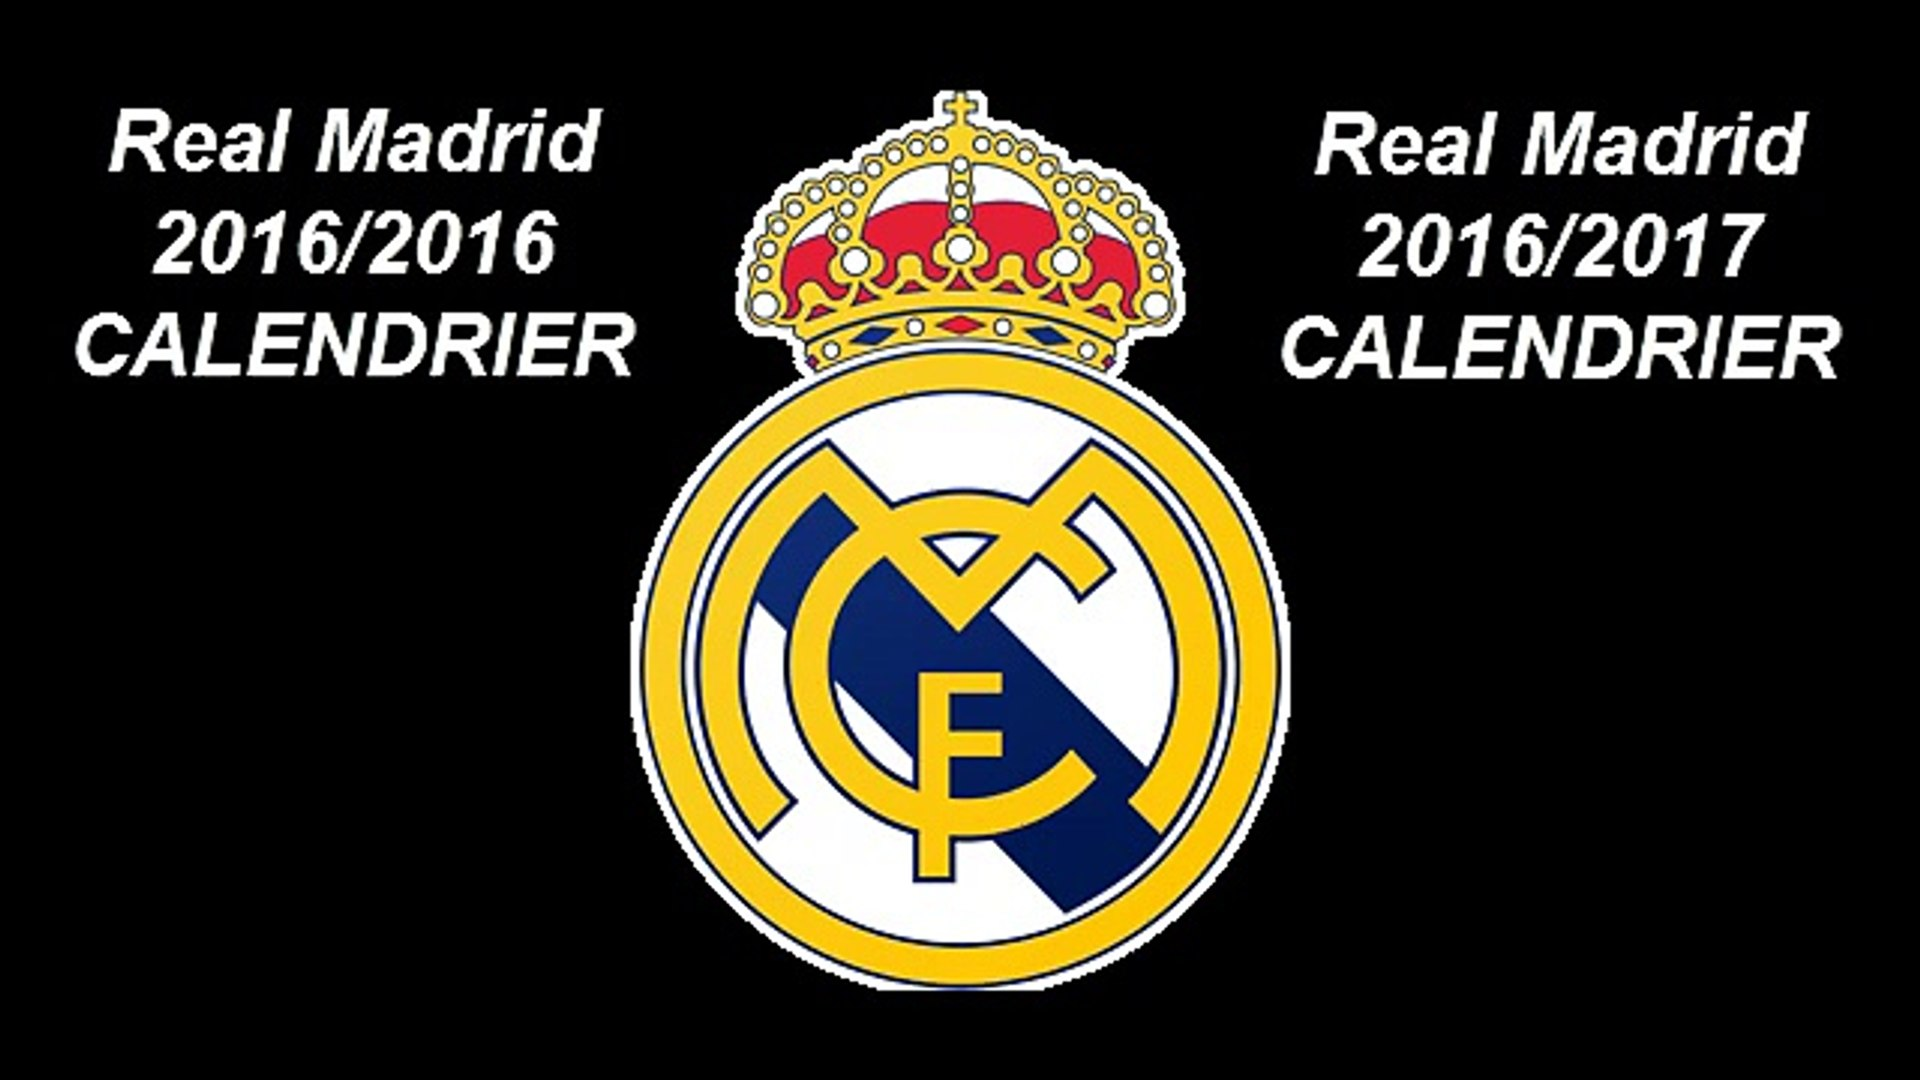 Calendrier Madrid.Real Madrid 2016 2017 Calendrier